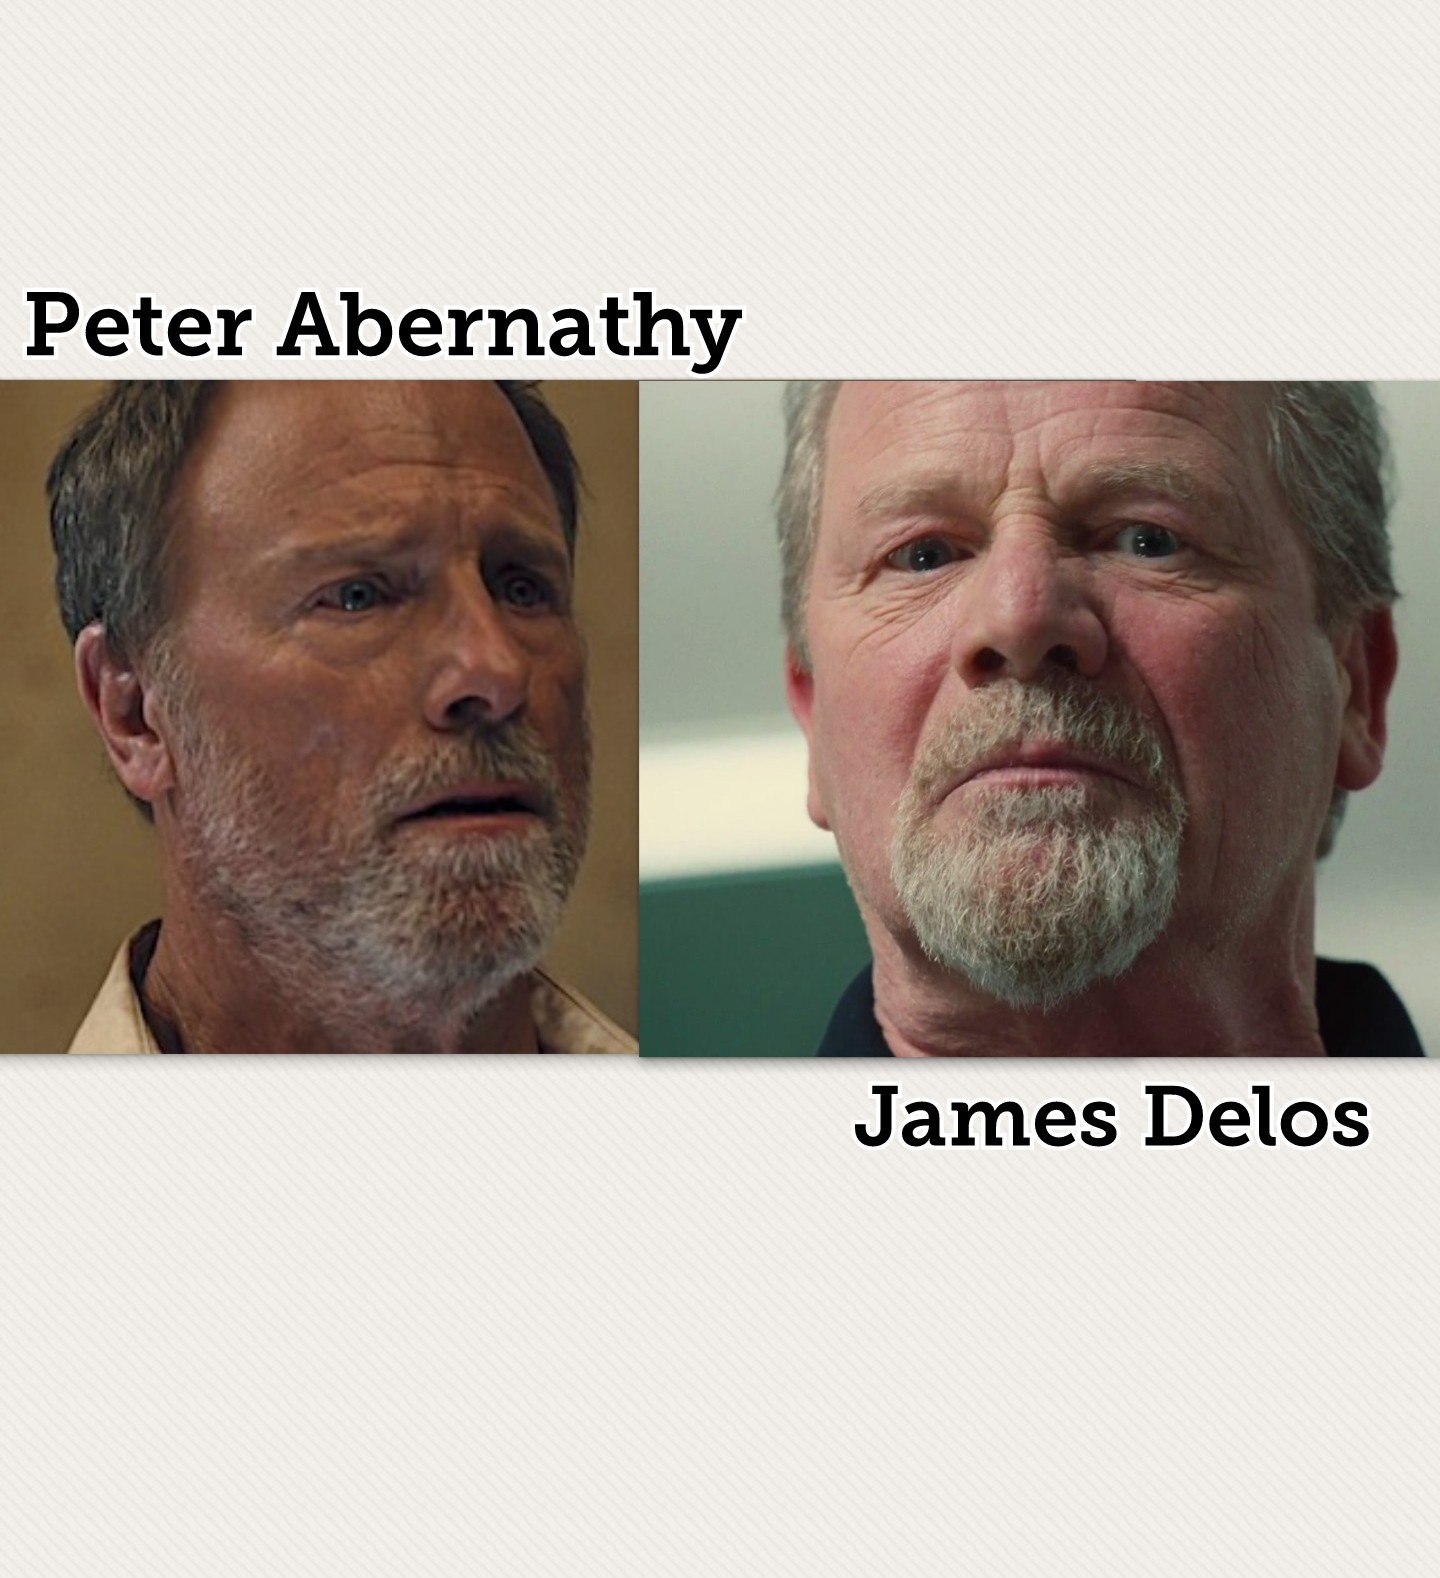 Any possible connection: Peter Abernathy & James Delos?